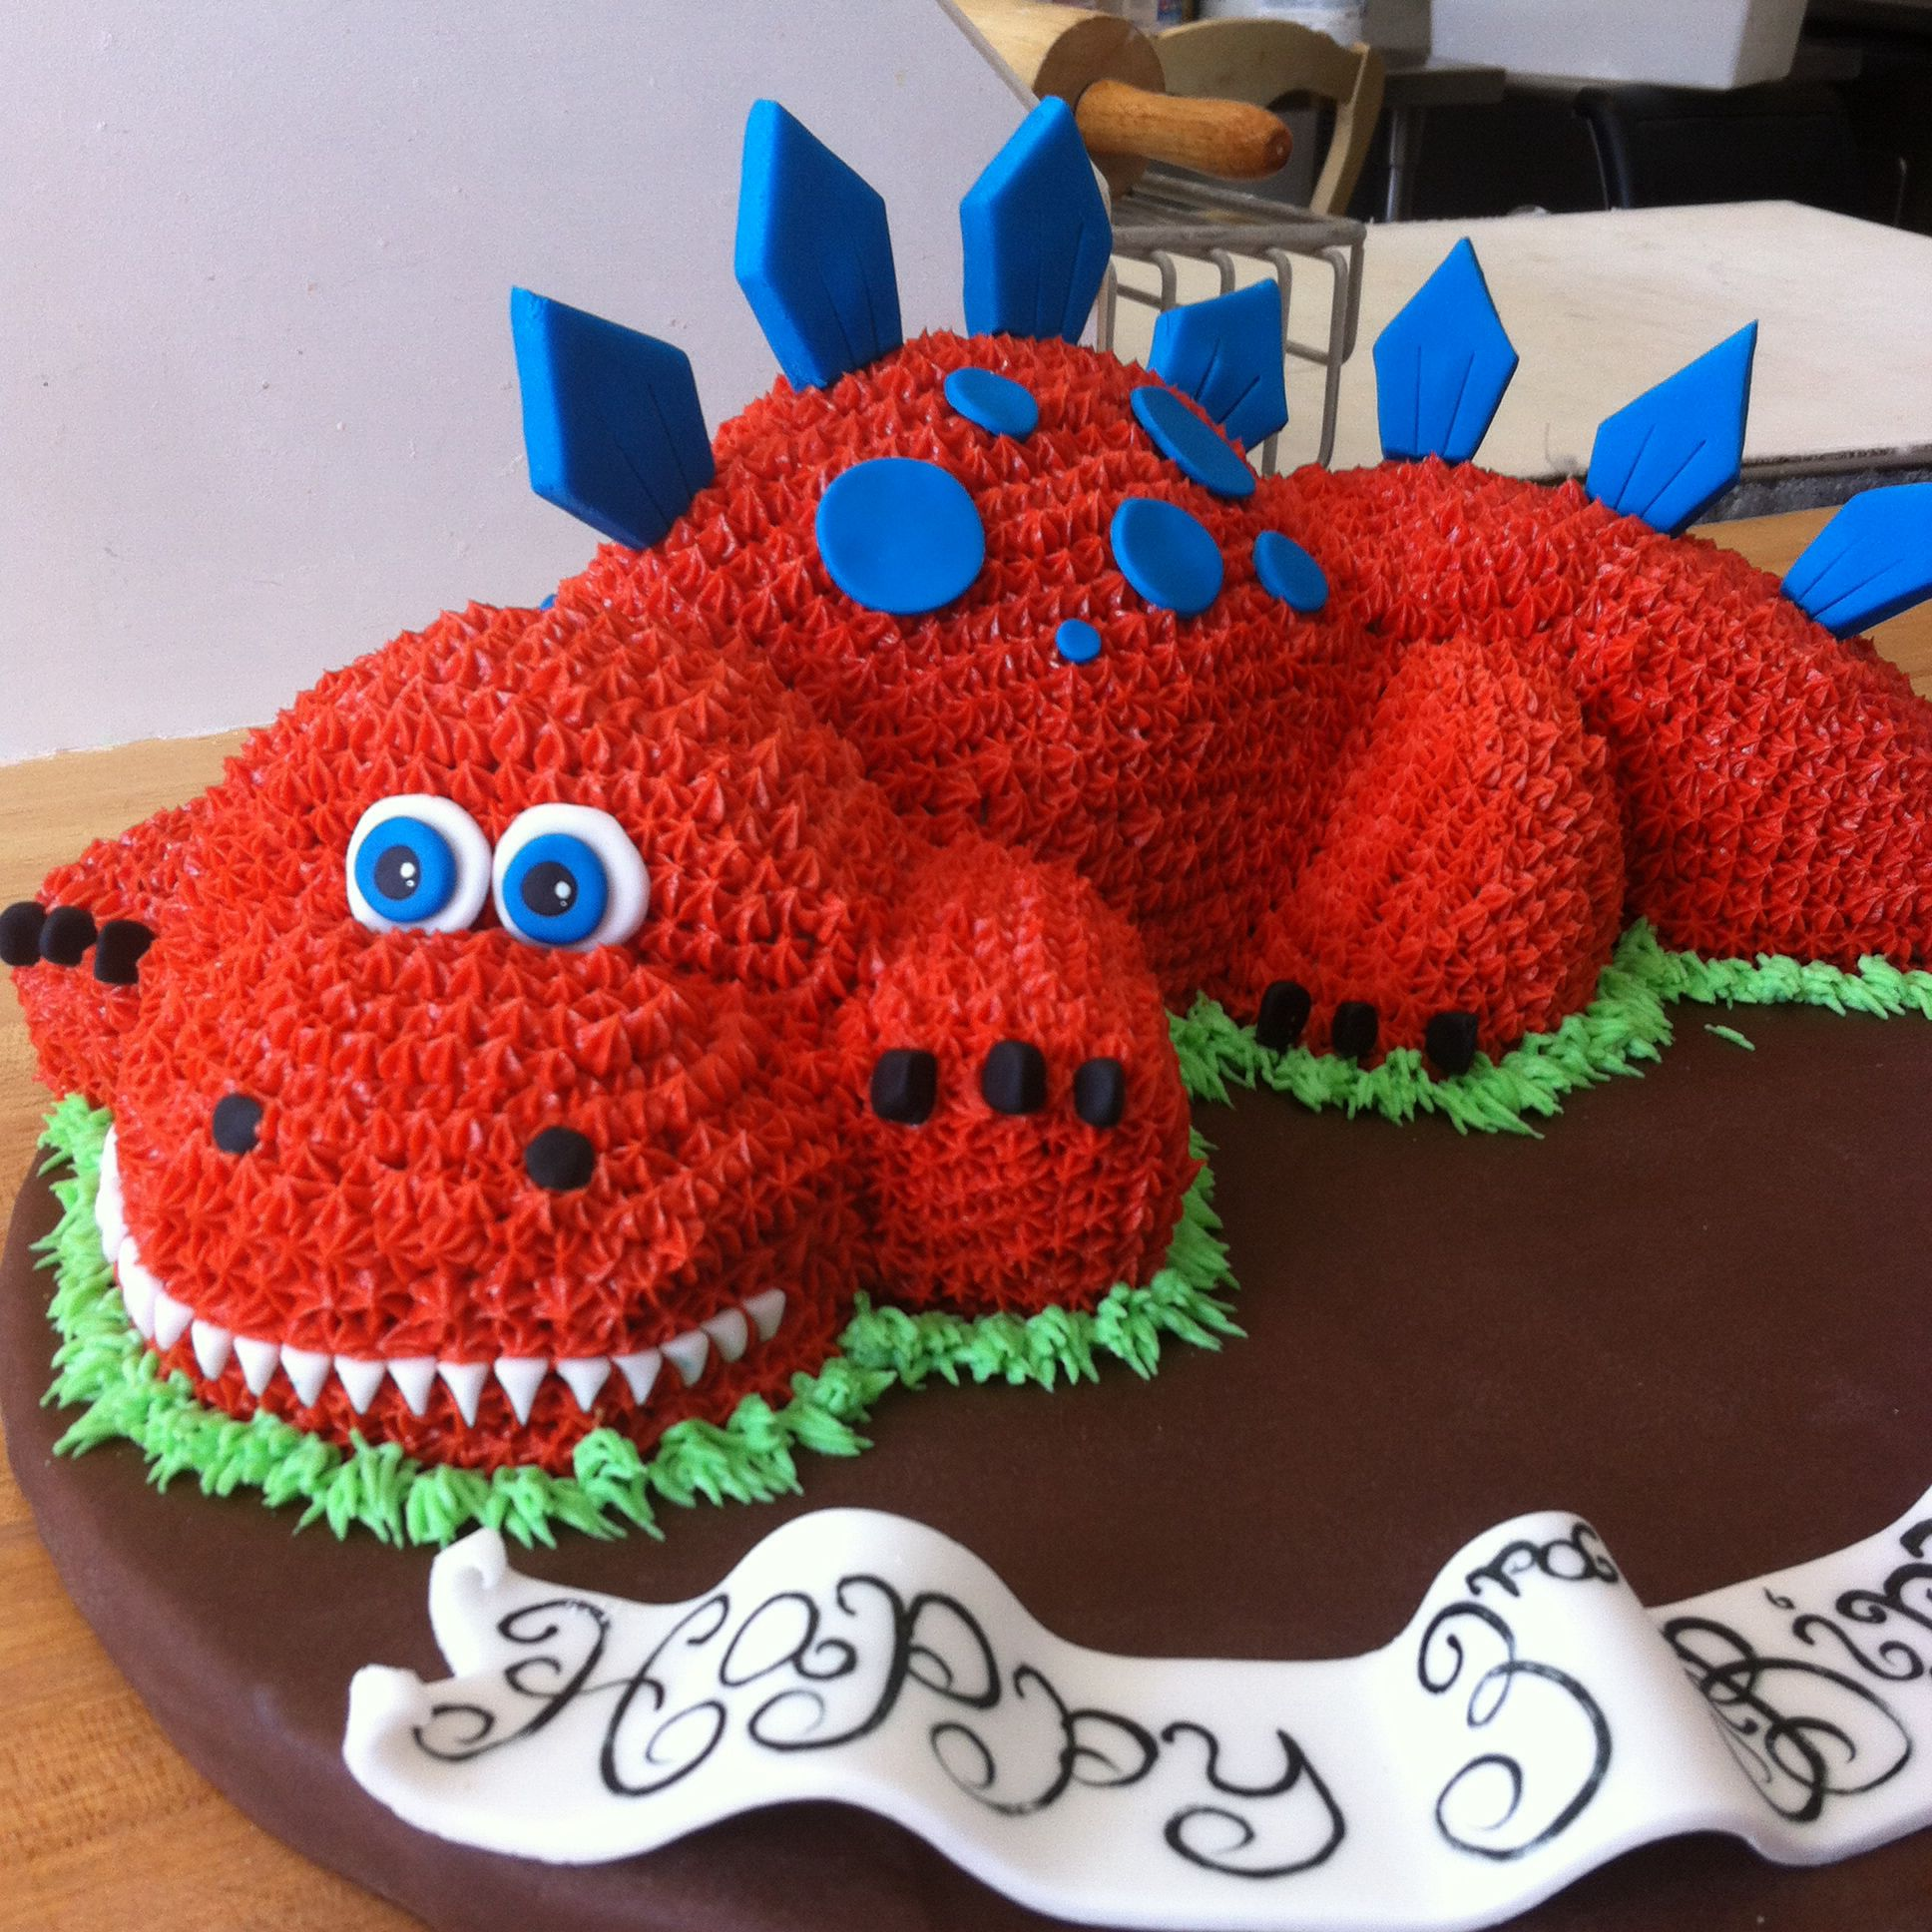 Dinosaur Birthdaycake For A Three Year Old Boy Tr3sbakers Made By Me More Pics On Instagram Theaccidentalbaker